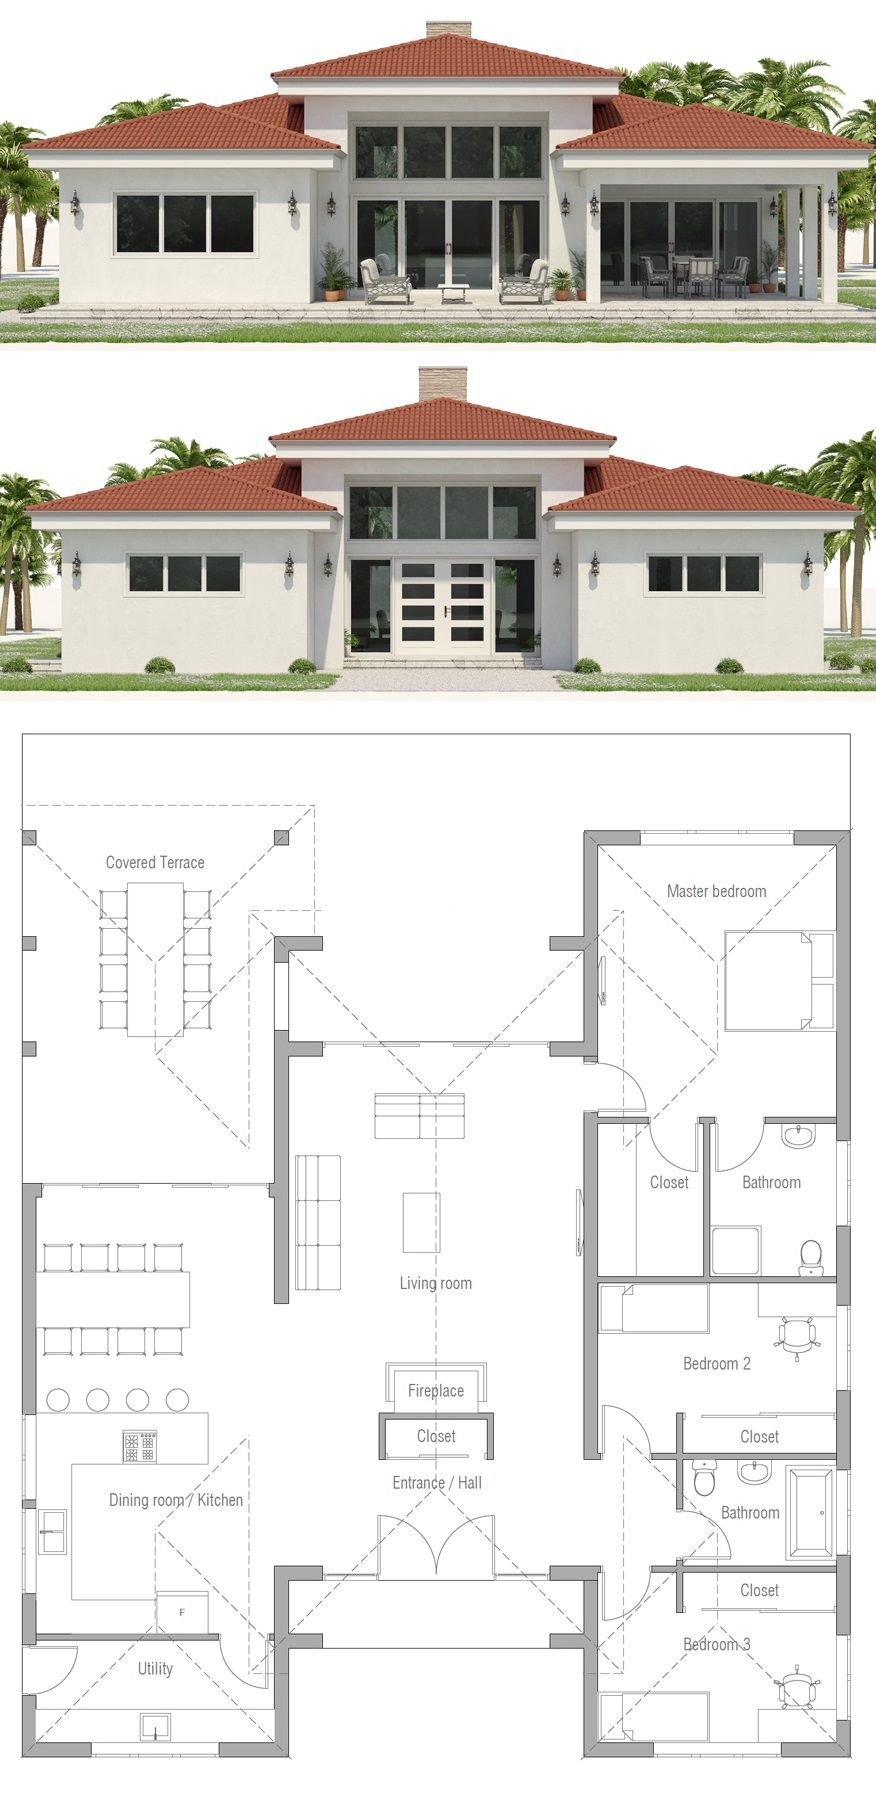 Best New House Plans Lovely House Plans Home Plans New Home Homeplans Houseplans